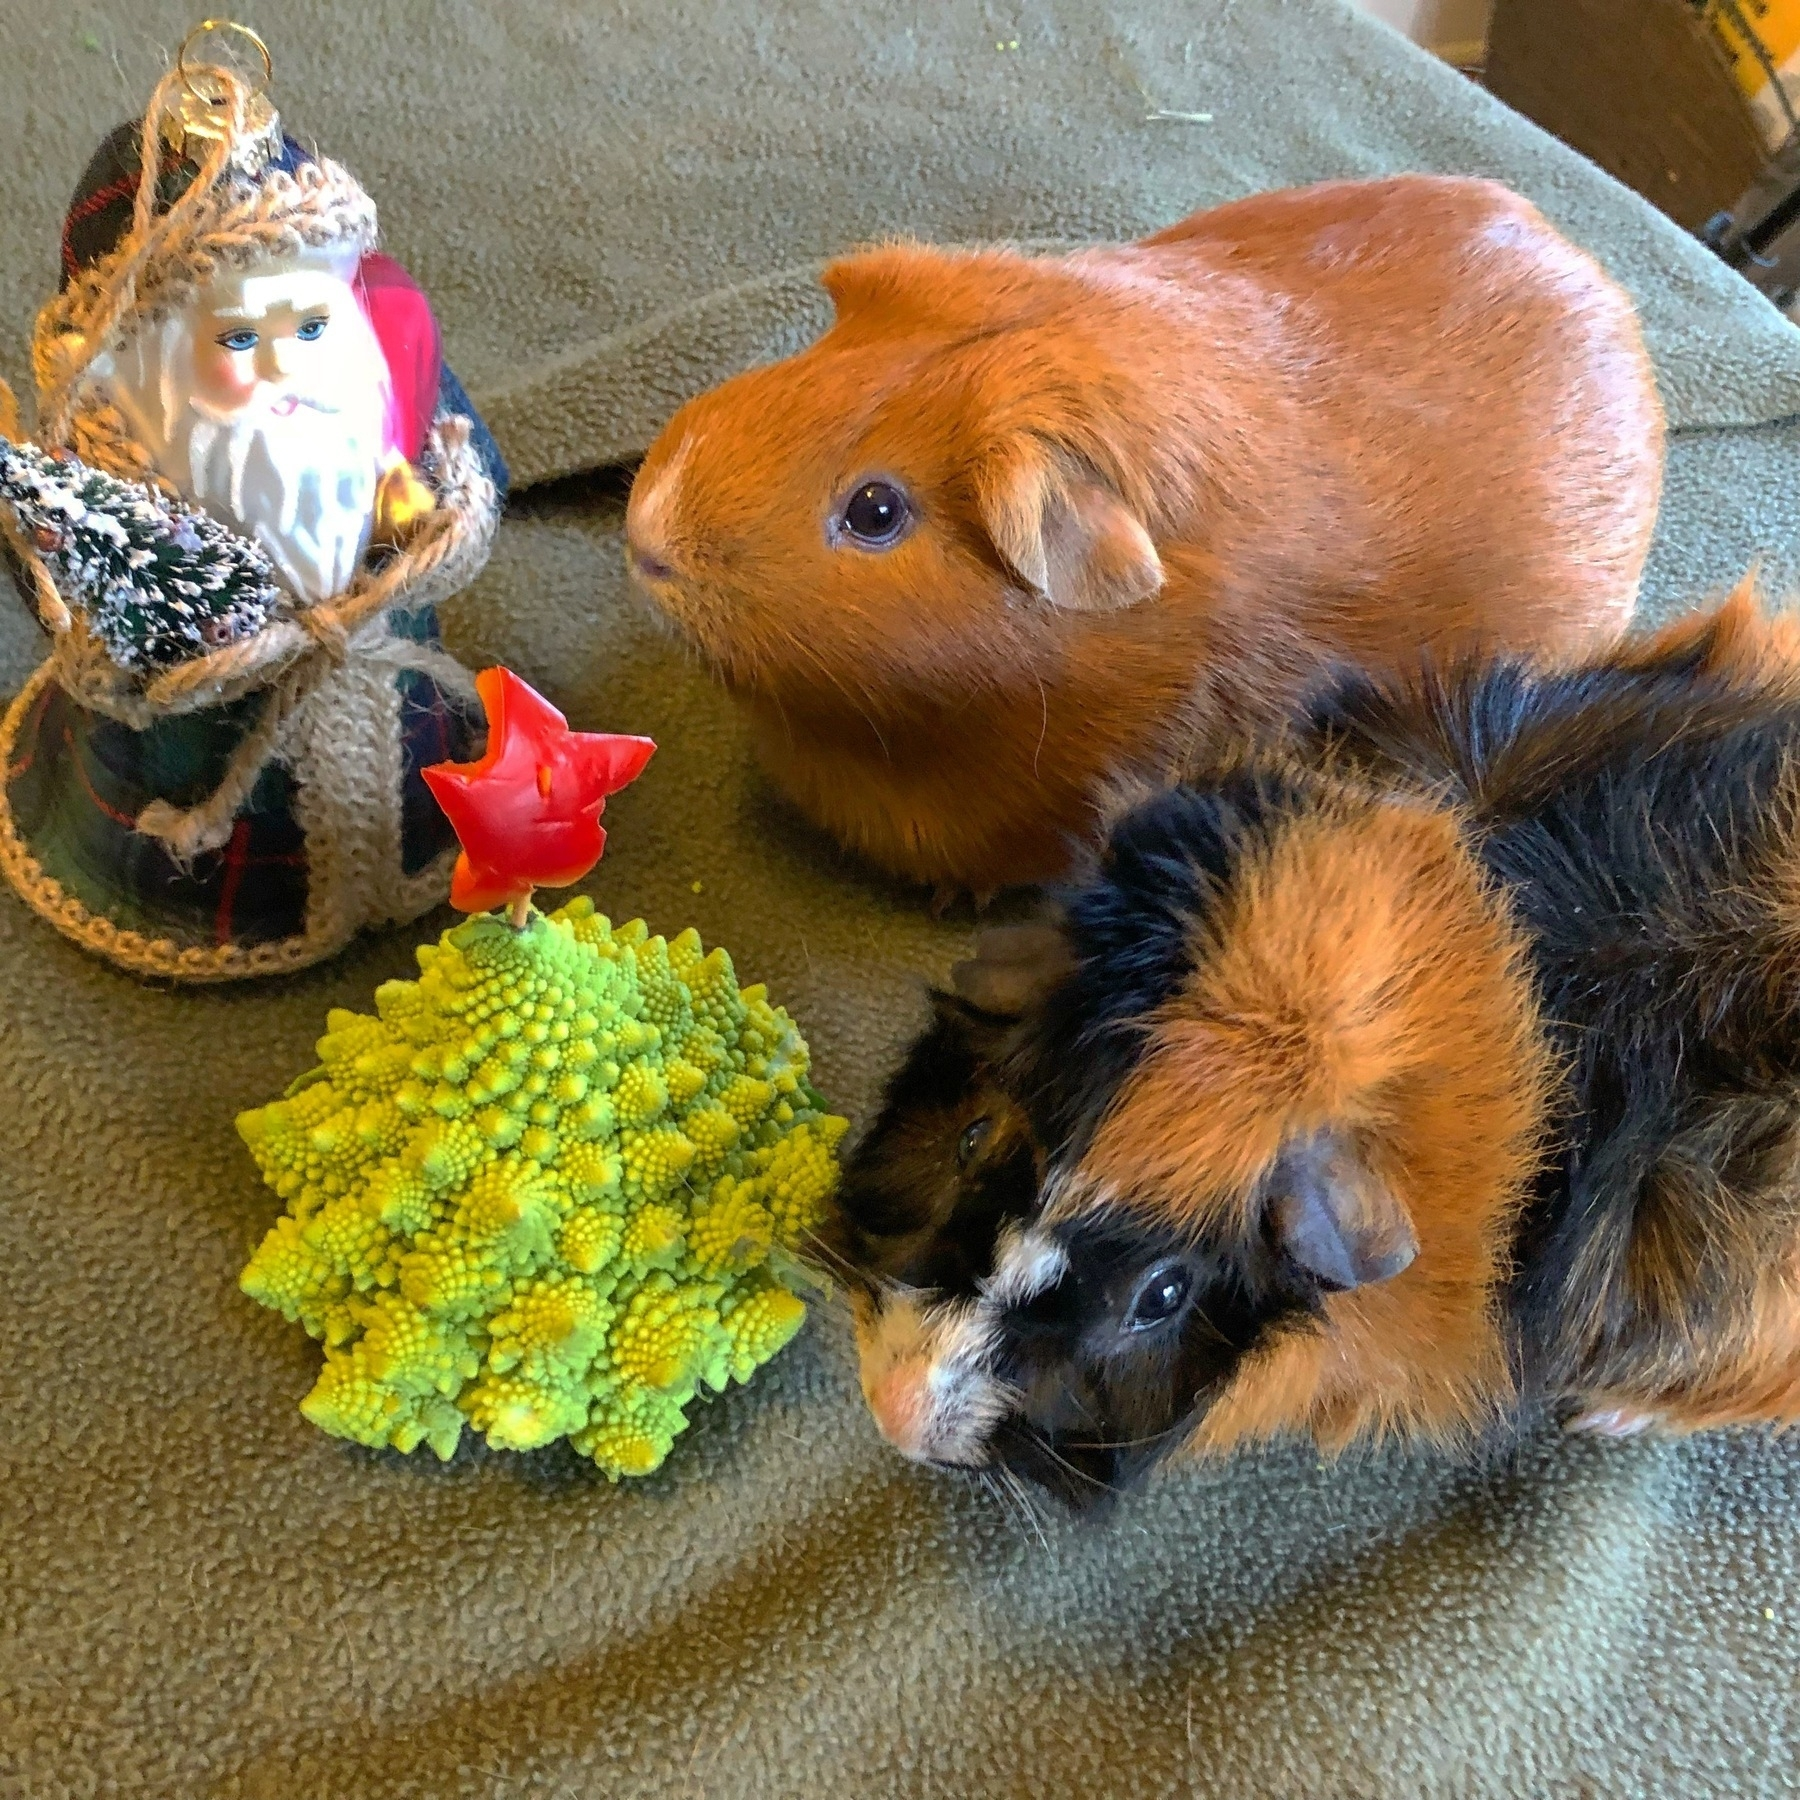 Guinea pigs Grace and Ada next to a Father Christmas ornament and a small Christmas tree.